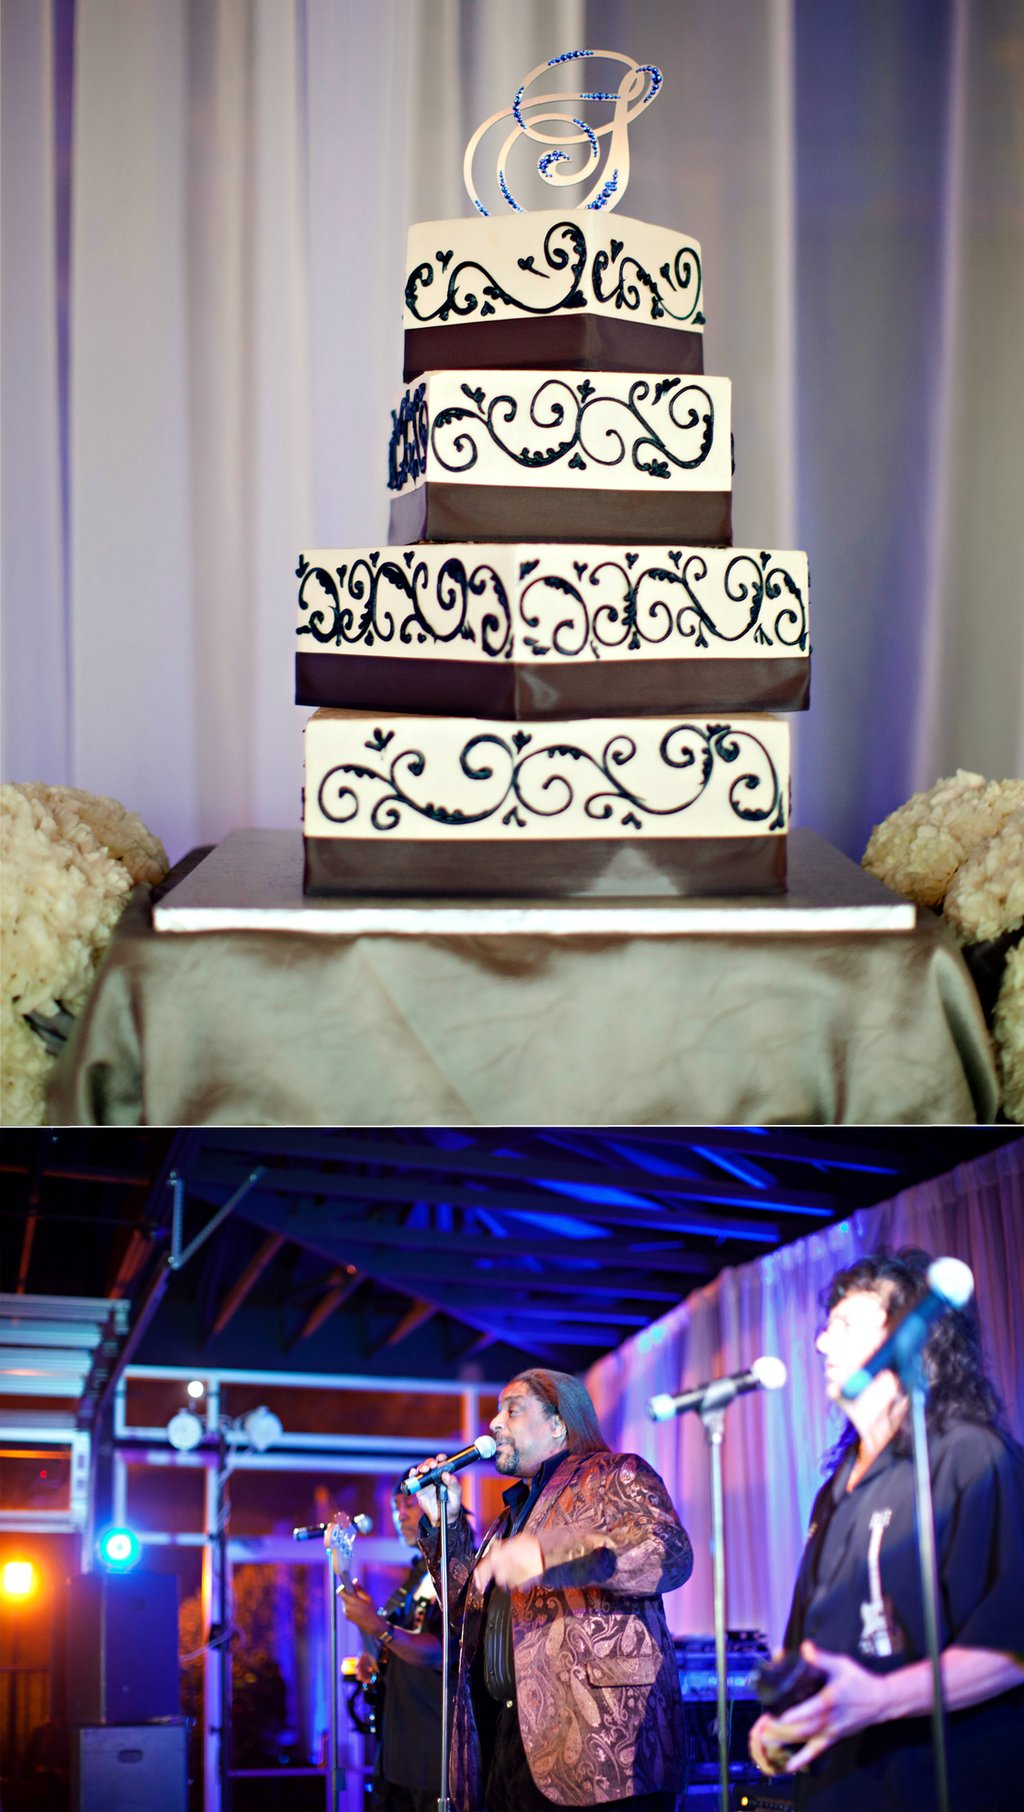 Real-weddings-classic-wedding-cake-reception-band-dj.full